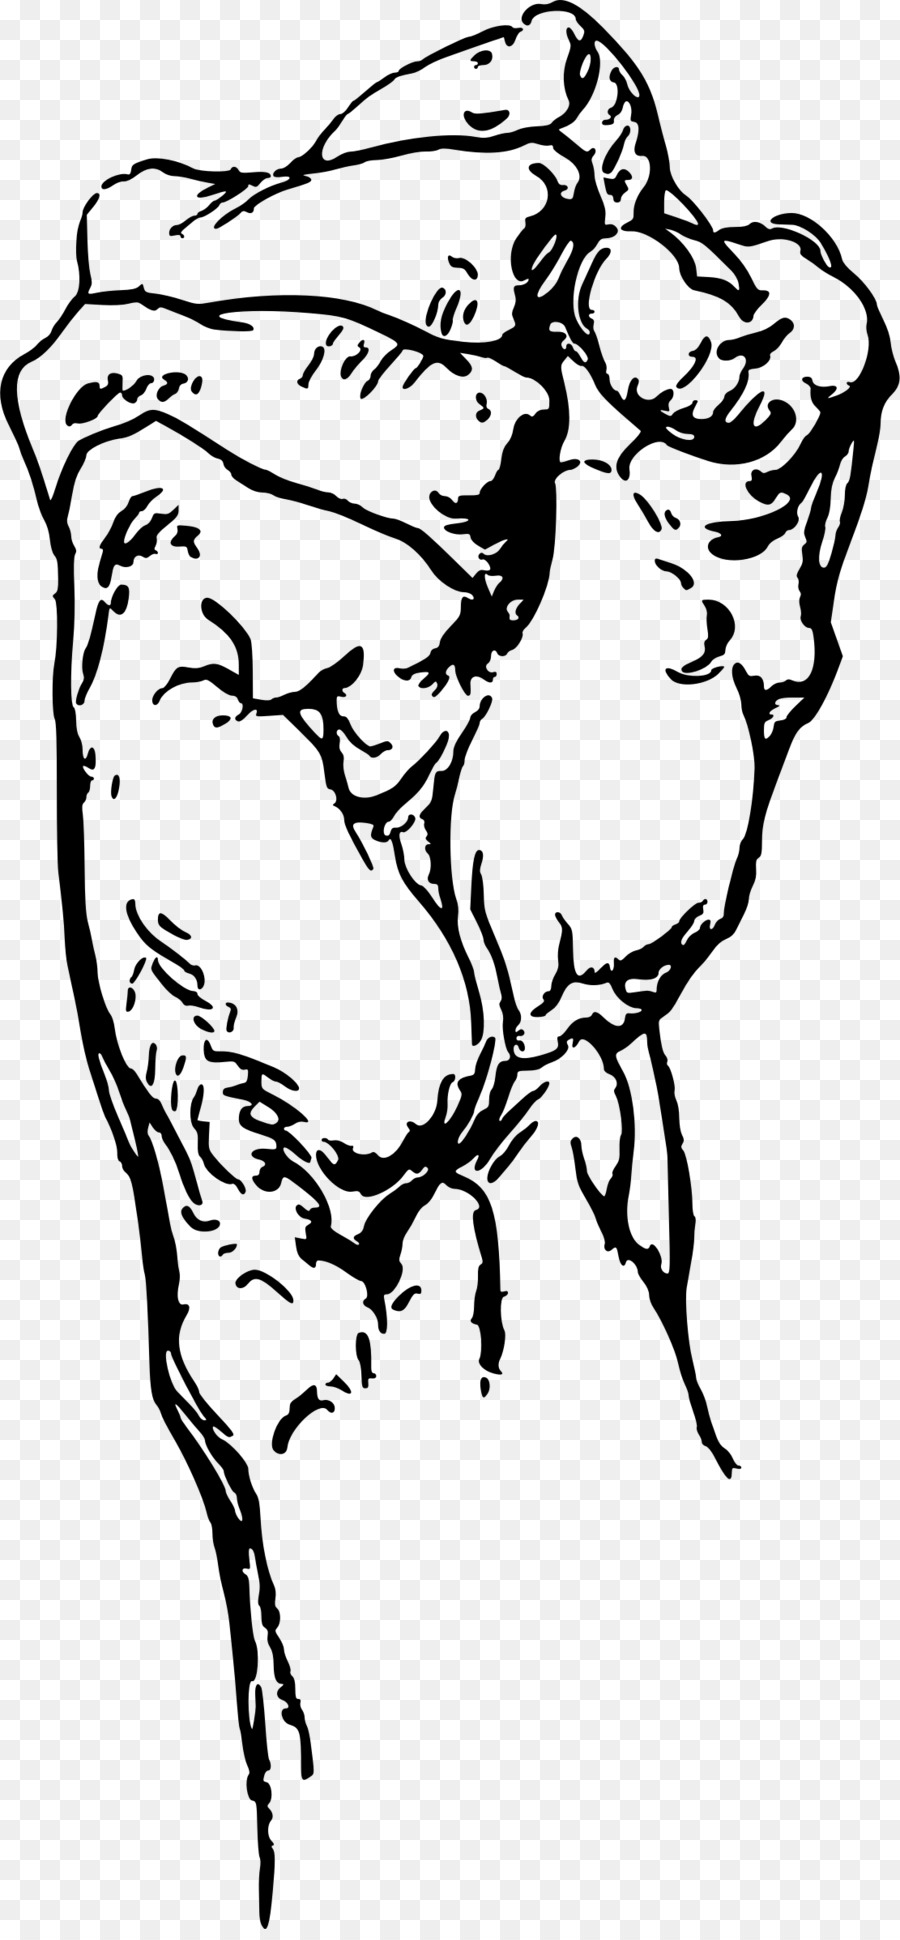 Constructive anatomy Drawing Human anatomy Art - clenched fist png ...